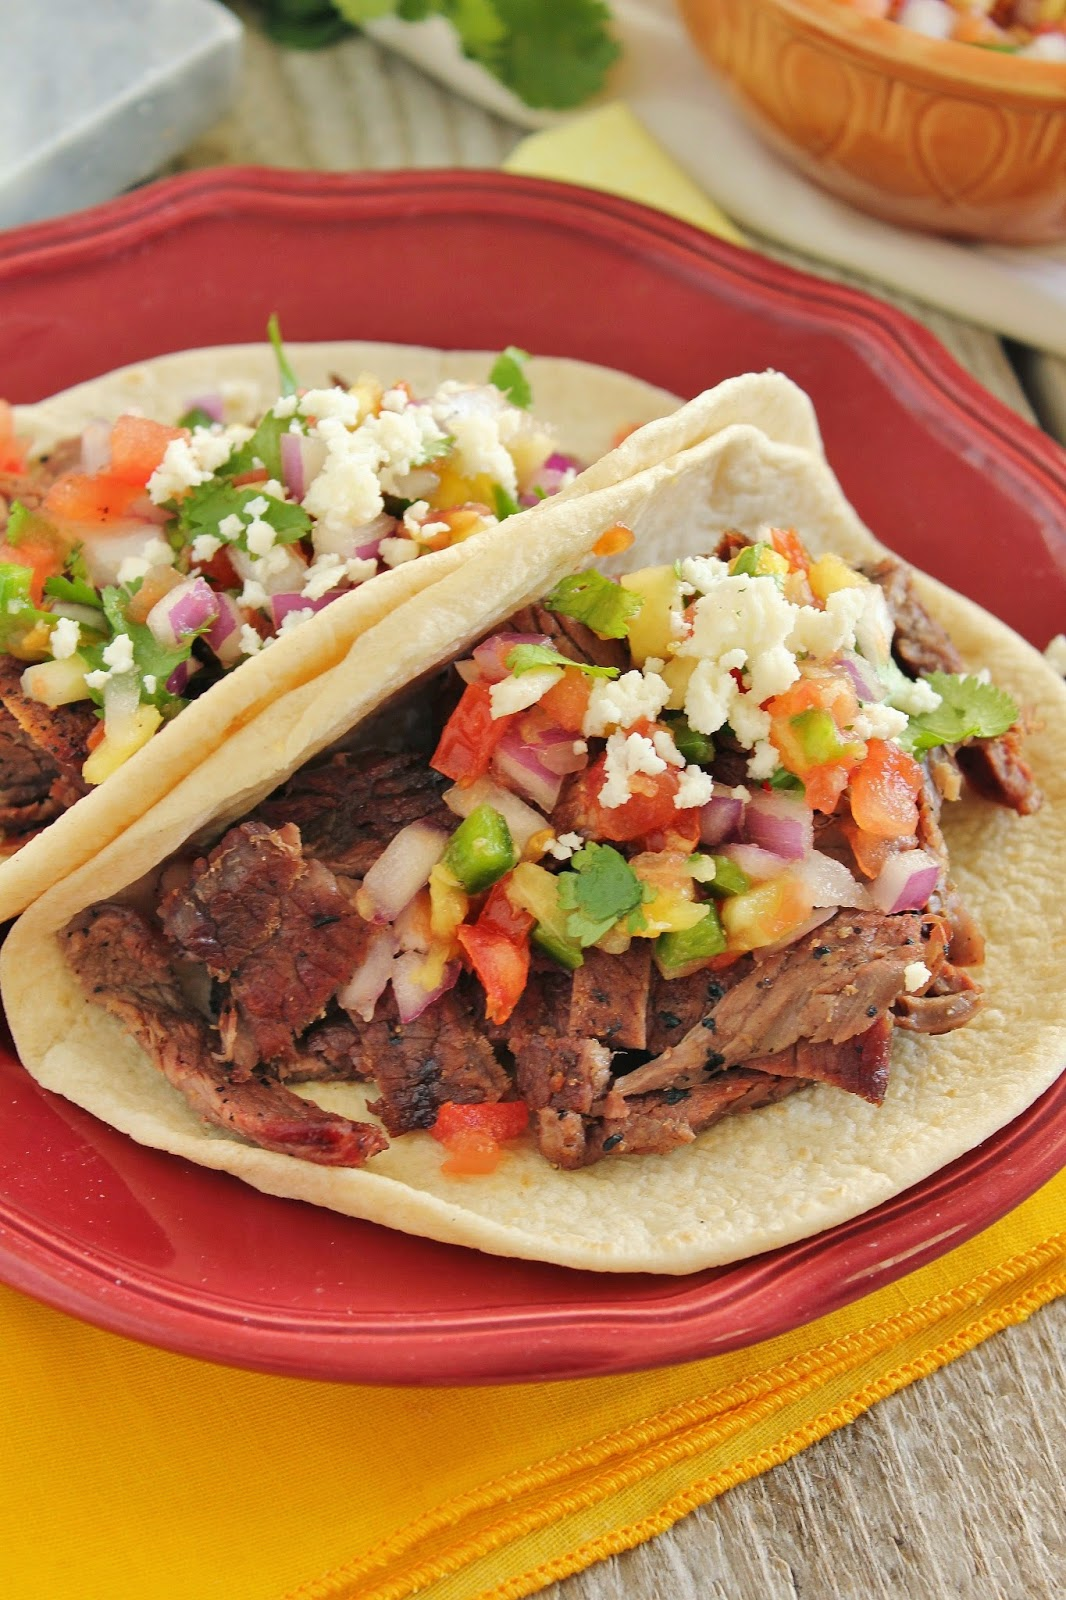 Grilled Ginger Steak Tacos With Pineapple Pico De Gallo